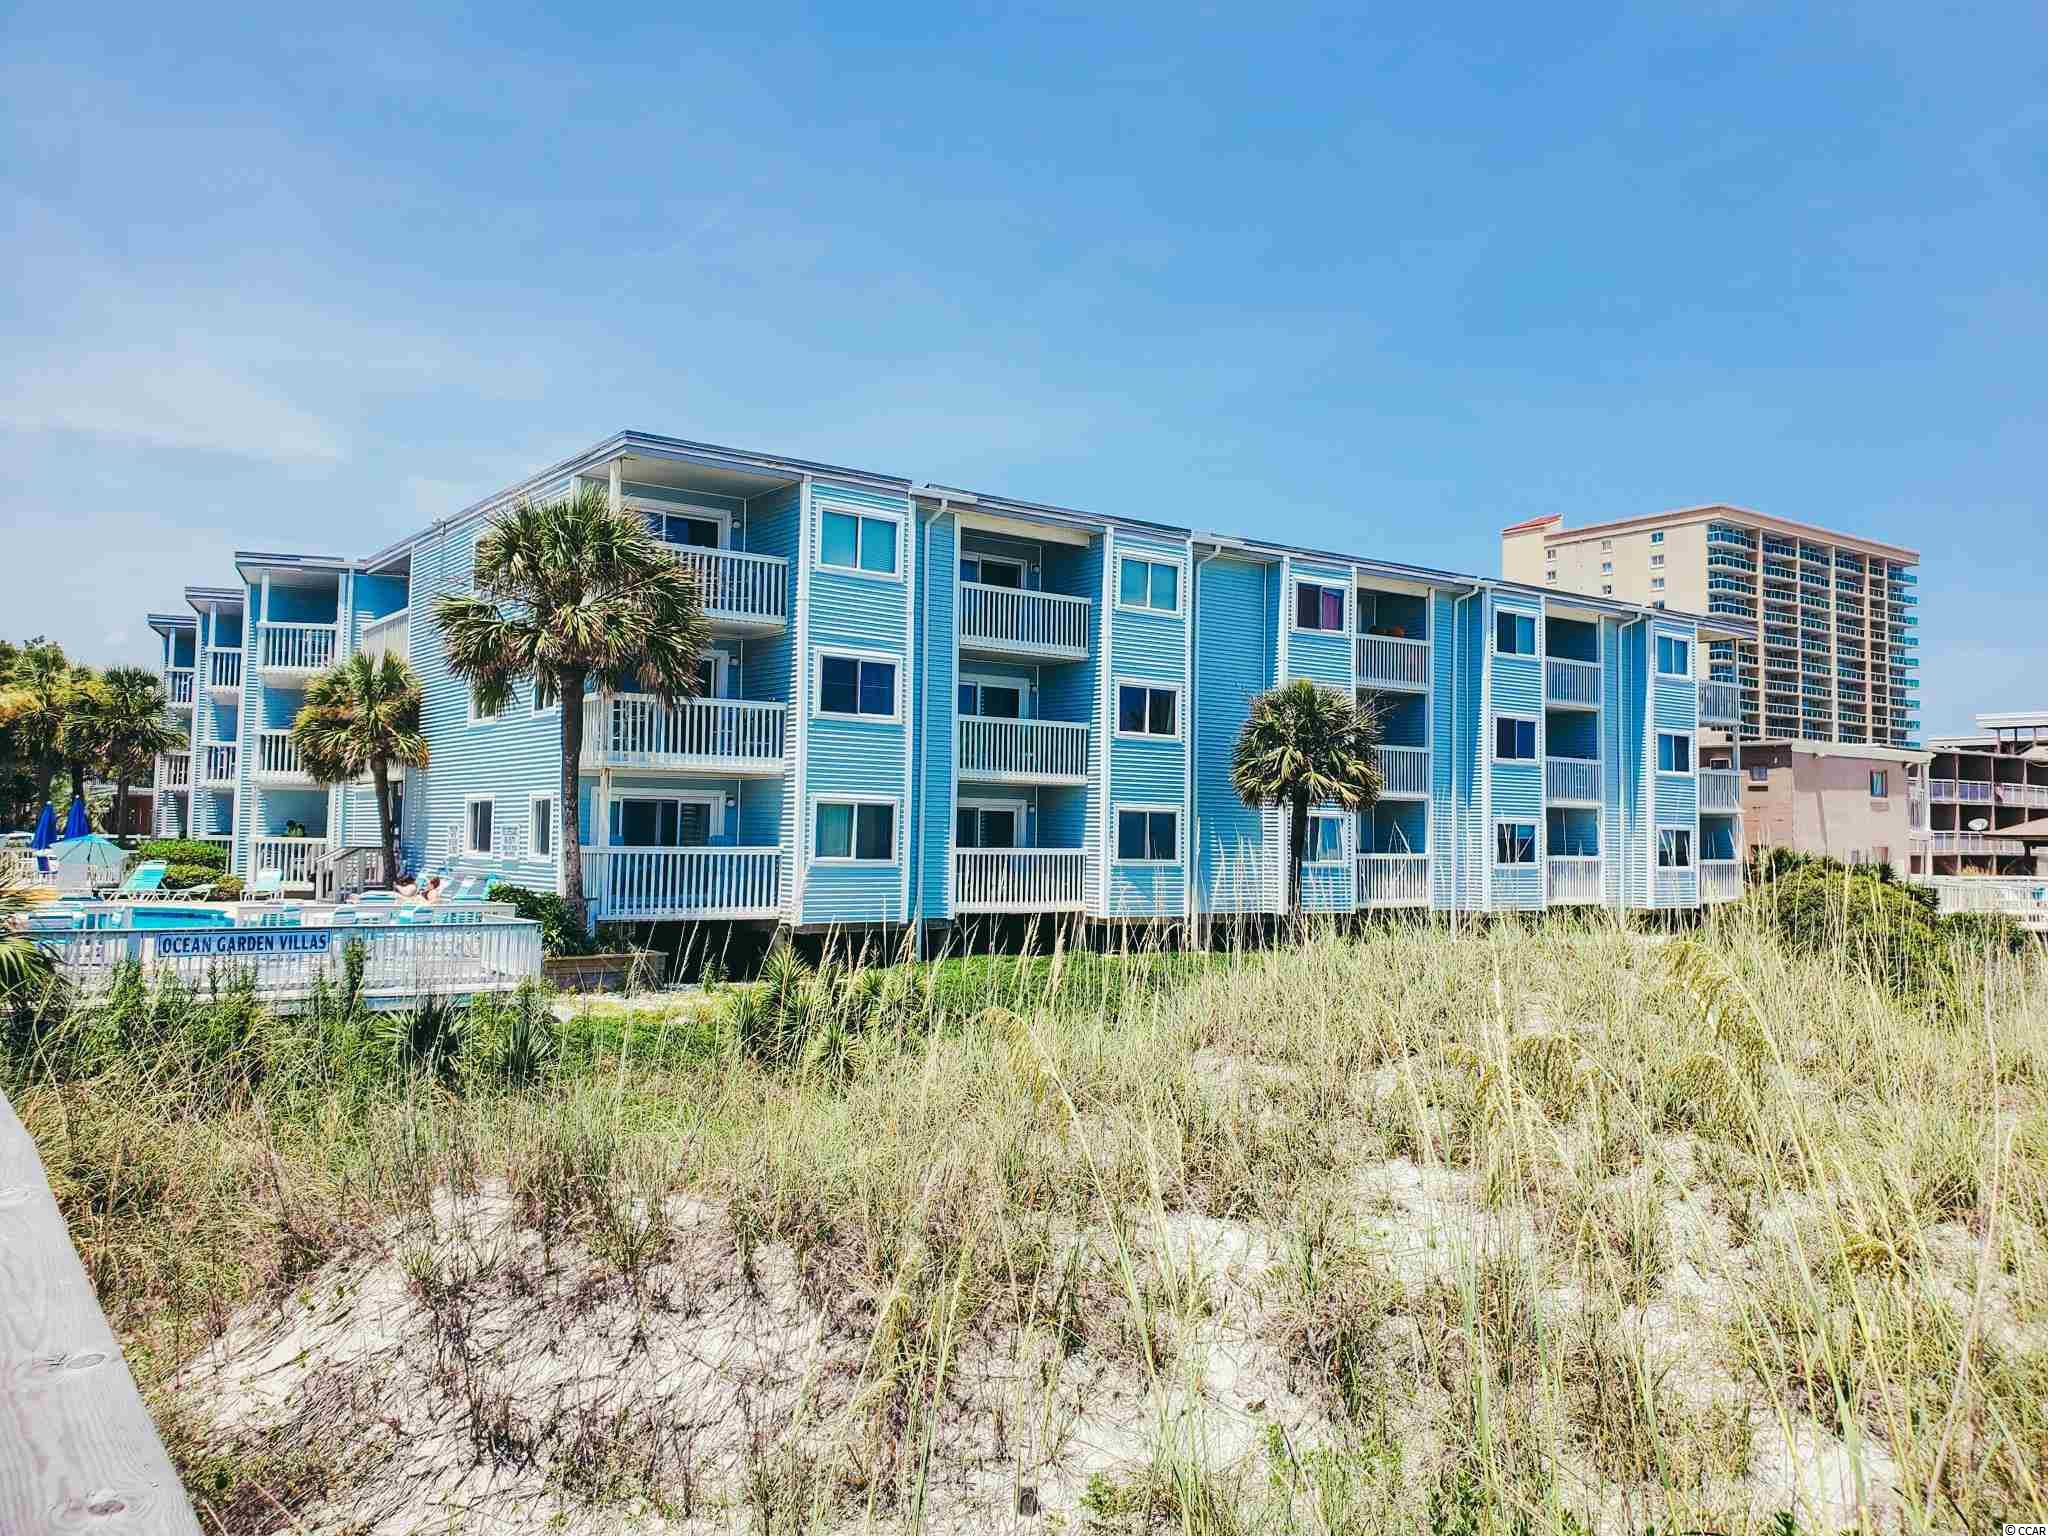 Beautiful DIRECT OCEAN FRONT 2 bedroom/2 bathroom condo in the Crescent Beach section of North Myrtle Beach. This condo is perfectly situated in the complex, being on the second floor which lets you take advantage of the ocean views over the dunes but you have less stairs than the third floor.  Owners have updated the flooring - there is no carpet in the condo!  They have also updated both bathrooms - both have beautiful tile work.  The washer and dryer have also been replaced recently, with new high end Samsung units.  The balcony overlooking the ocean is desirable because it is large AND private.  The views from inside and out are spectacular!  The condo comes fully furnished and the sofa has a pull out bed.  NEW hot water heater installed July 2021!!  Owners are allowed pets in this building.  There is also a beautiful community pool in between the buildings and a couple of charcoal grills for you to use.  The HOA fees include building insurance, water, sewer, trash, pest control, cable and high speed internet.  The location of this building is ideal - less than 2 miles South of Main Street and just over 2.5 miles to Barefoot Landing!  You are truly close to so many attractions, restaurants and shopping opportunities! Be sure to check out the immersive virtual tour and schedule your showing today before this one is gone!